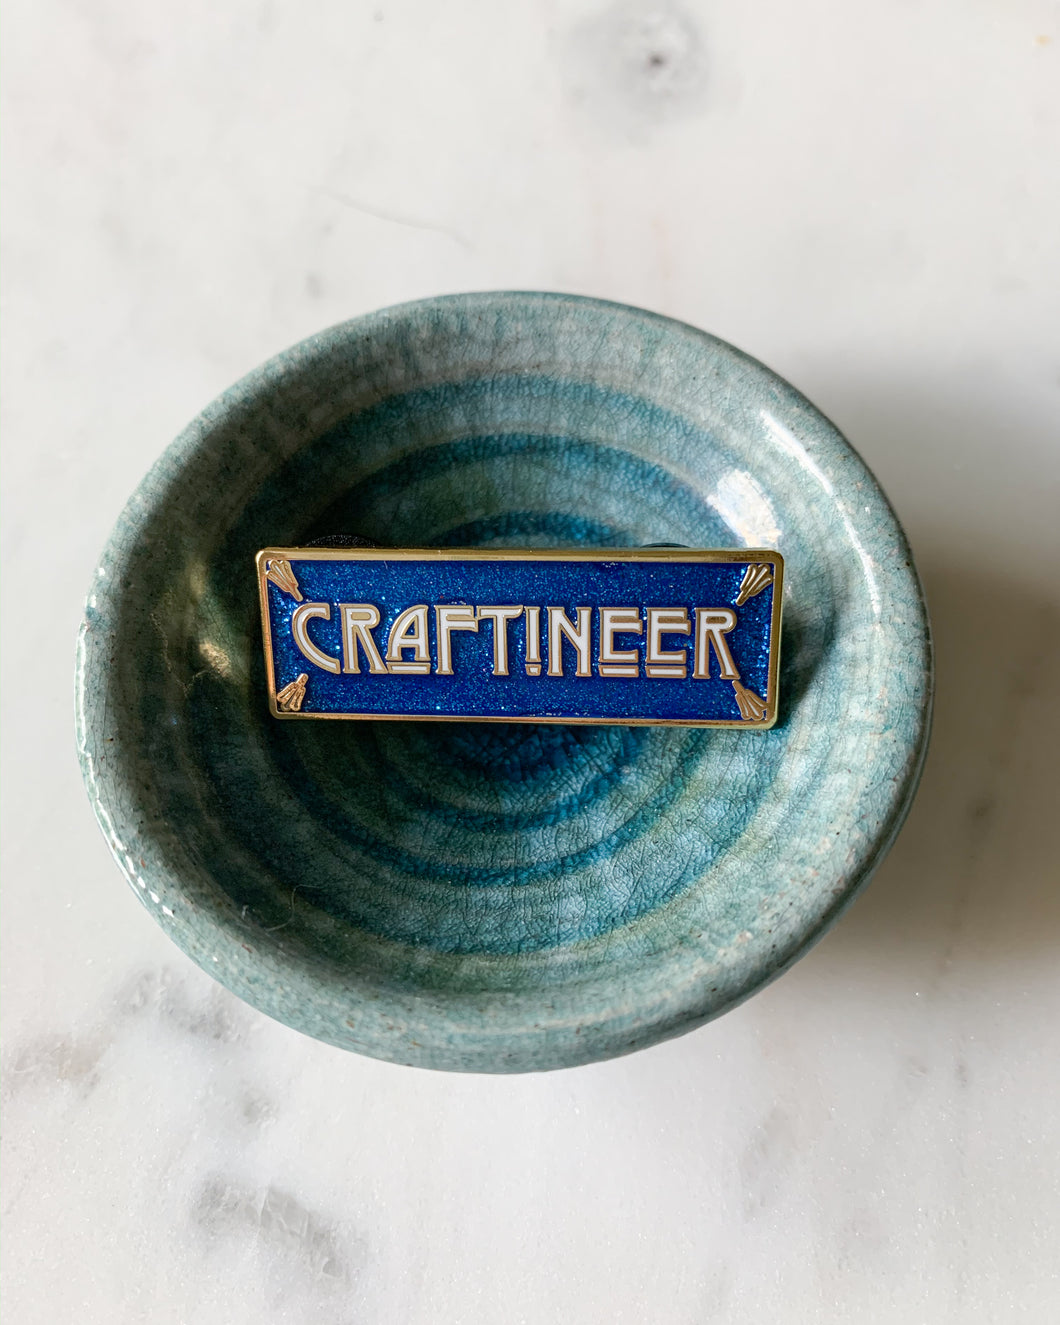 Craftineer Enamel Pin